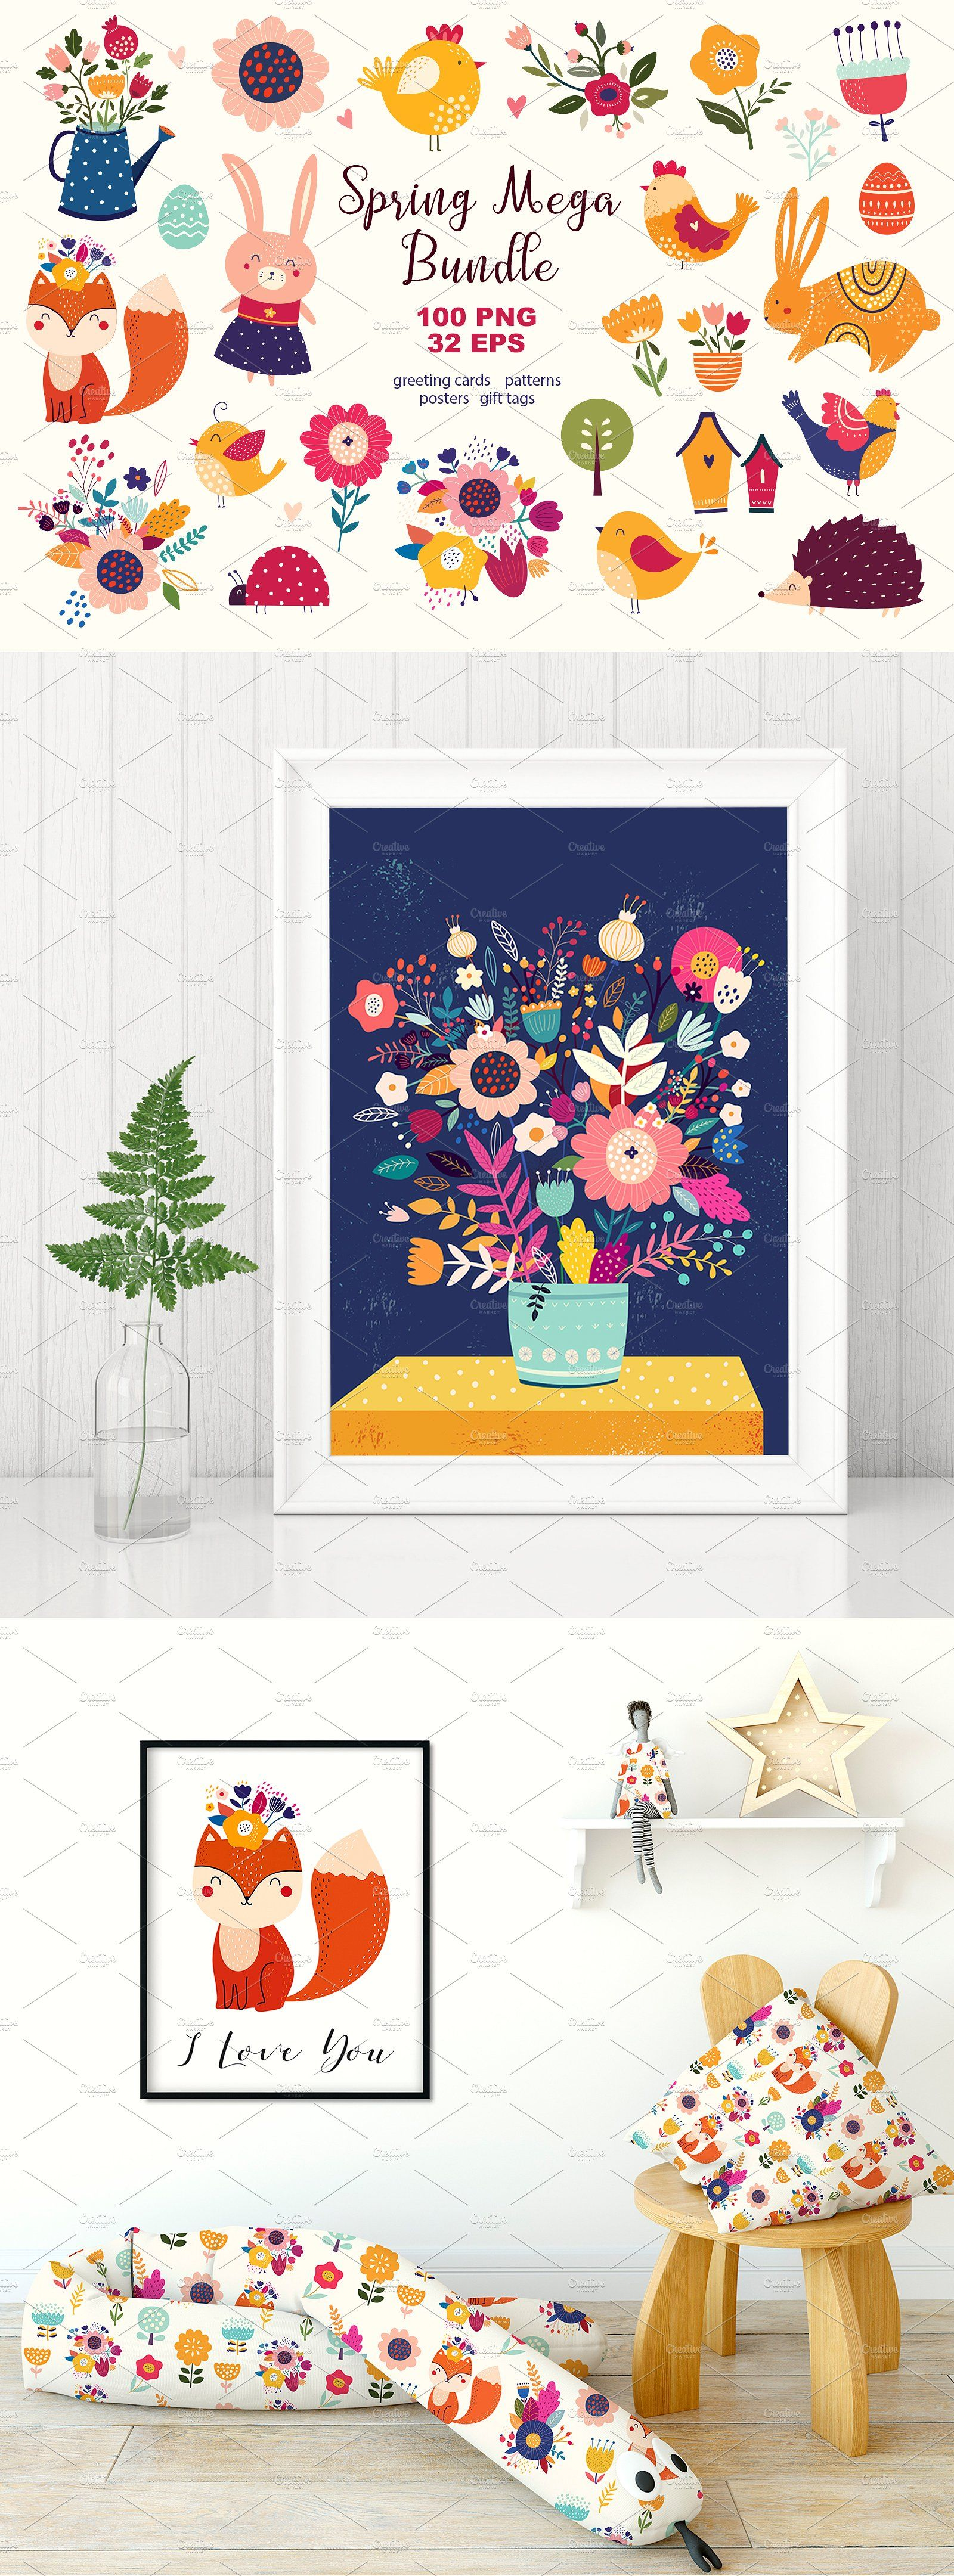 Spring mega bundle sprint trade pinterest illustration fonts this collection included happy easter greeting cards cute characters tags banners labels decorative elements symbols seamless patterns with cute m4hsunfo